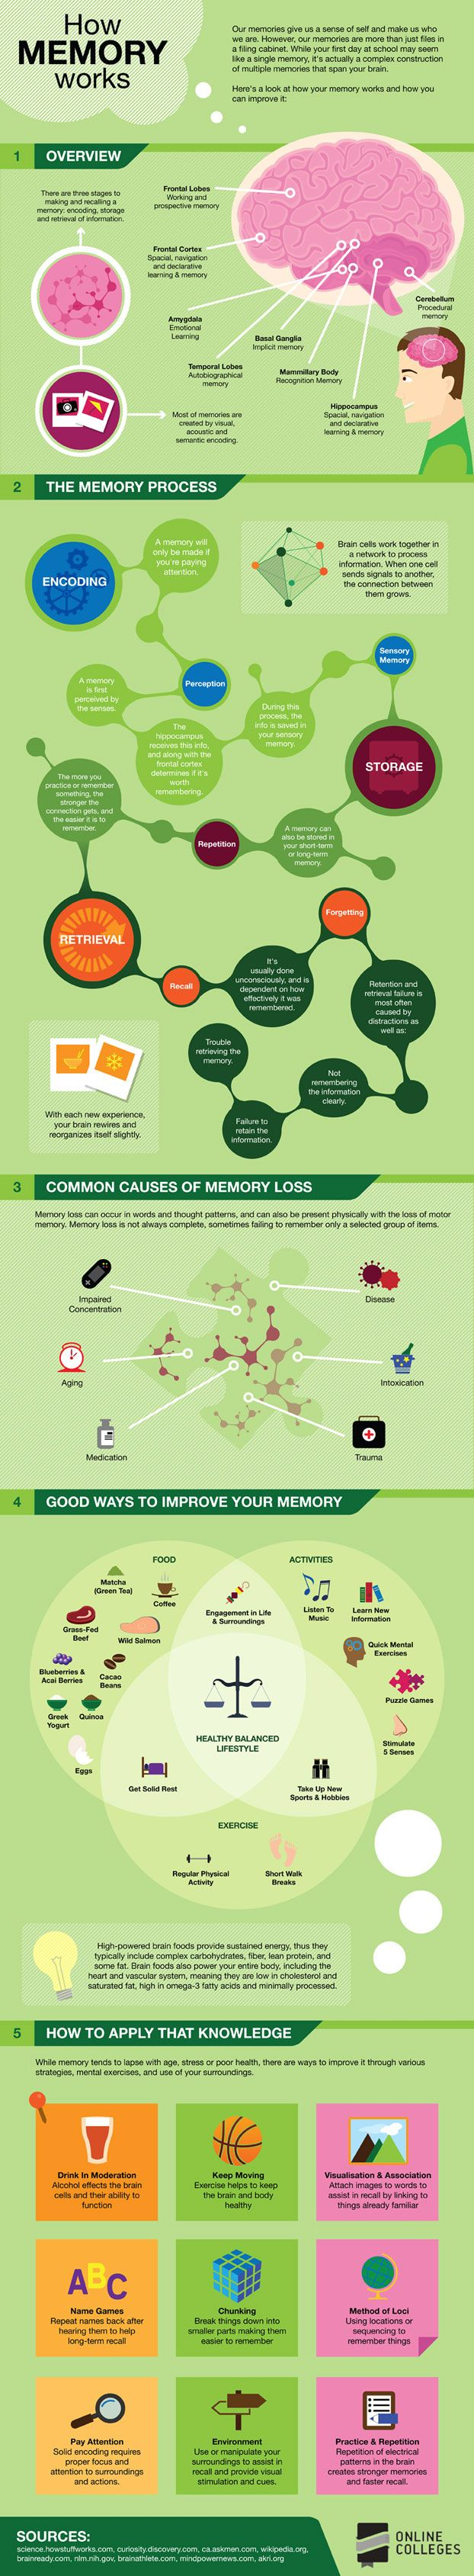 Forgotten Knowledge: How Memory Works, and to Improve Yours (Infographic) : Discovery Channel